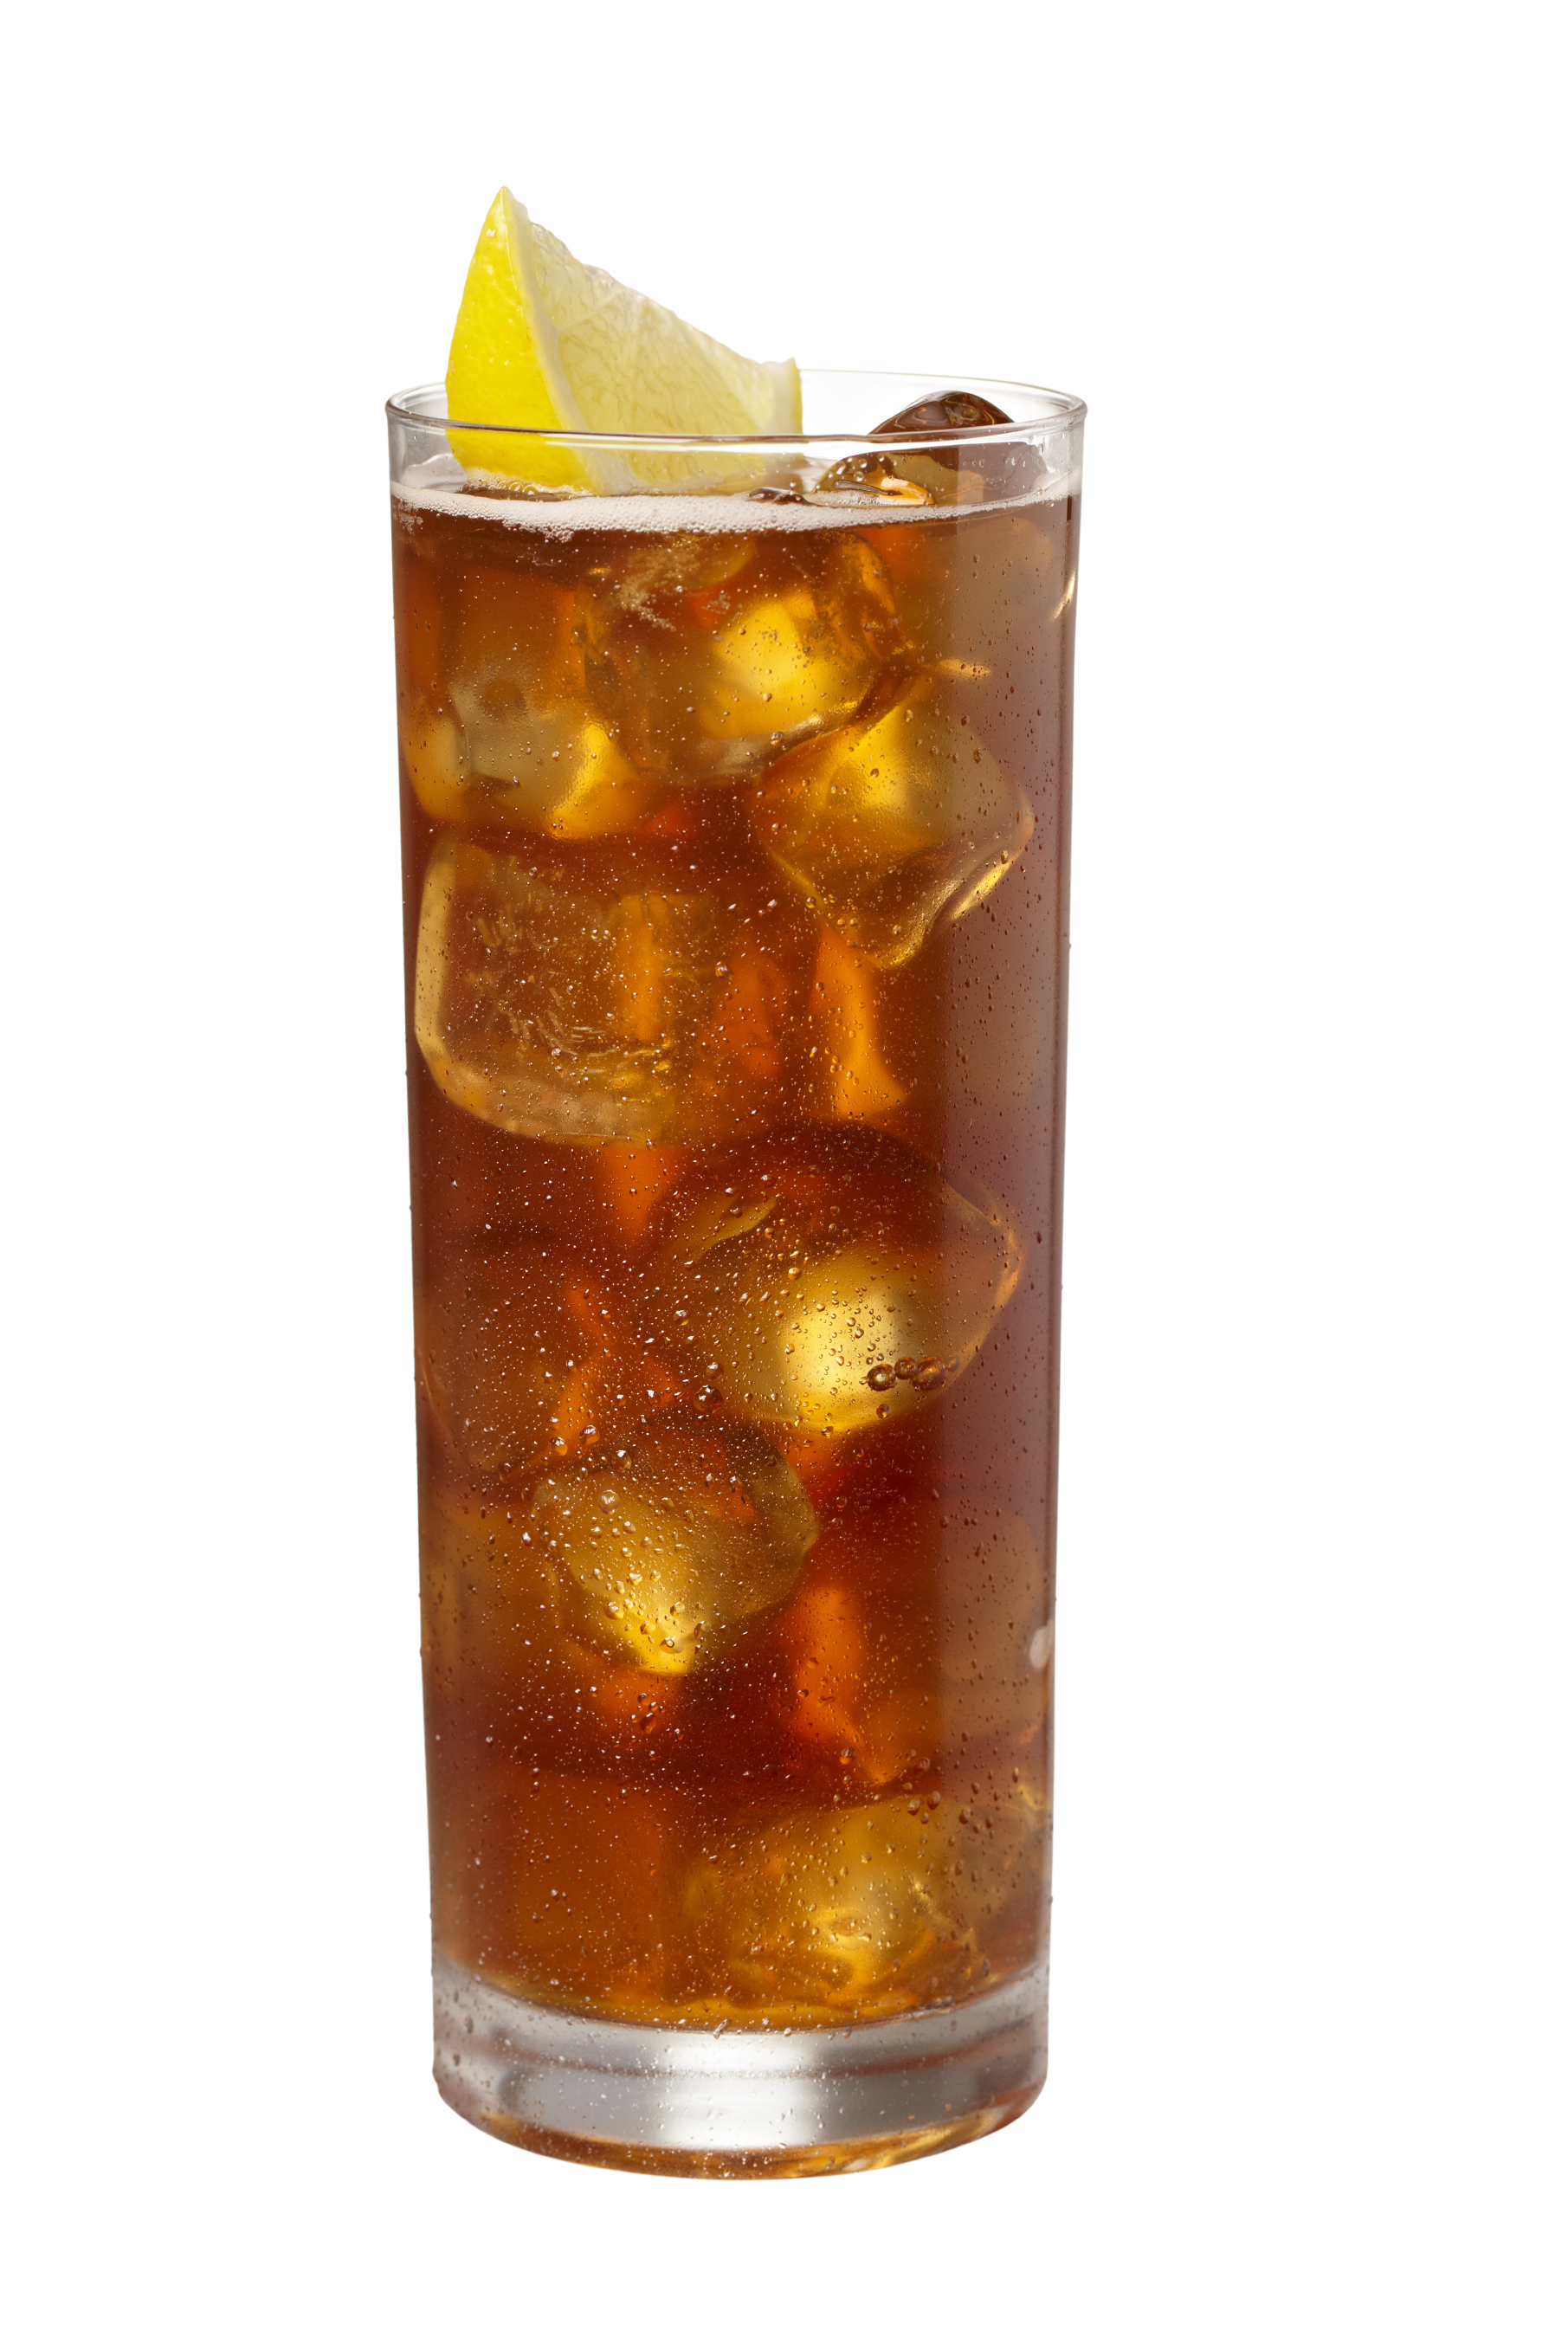 Black Iced Tea